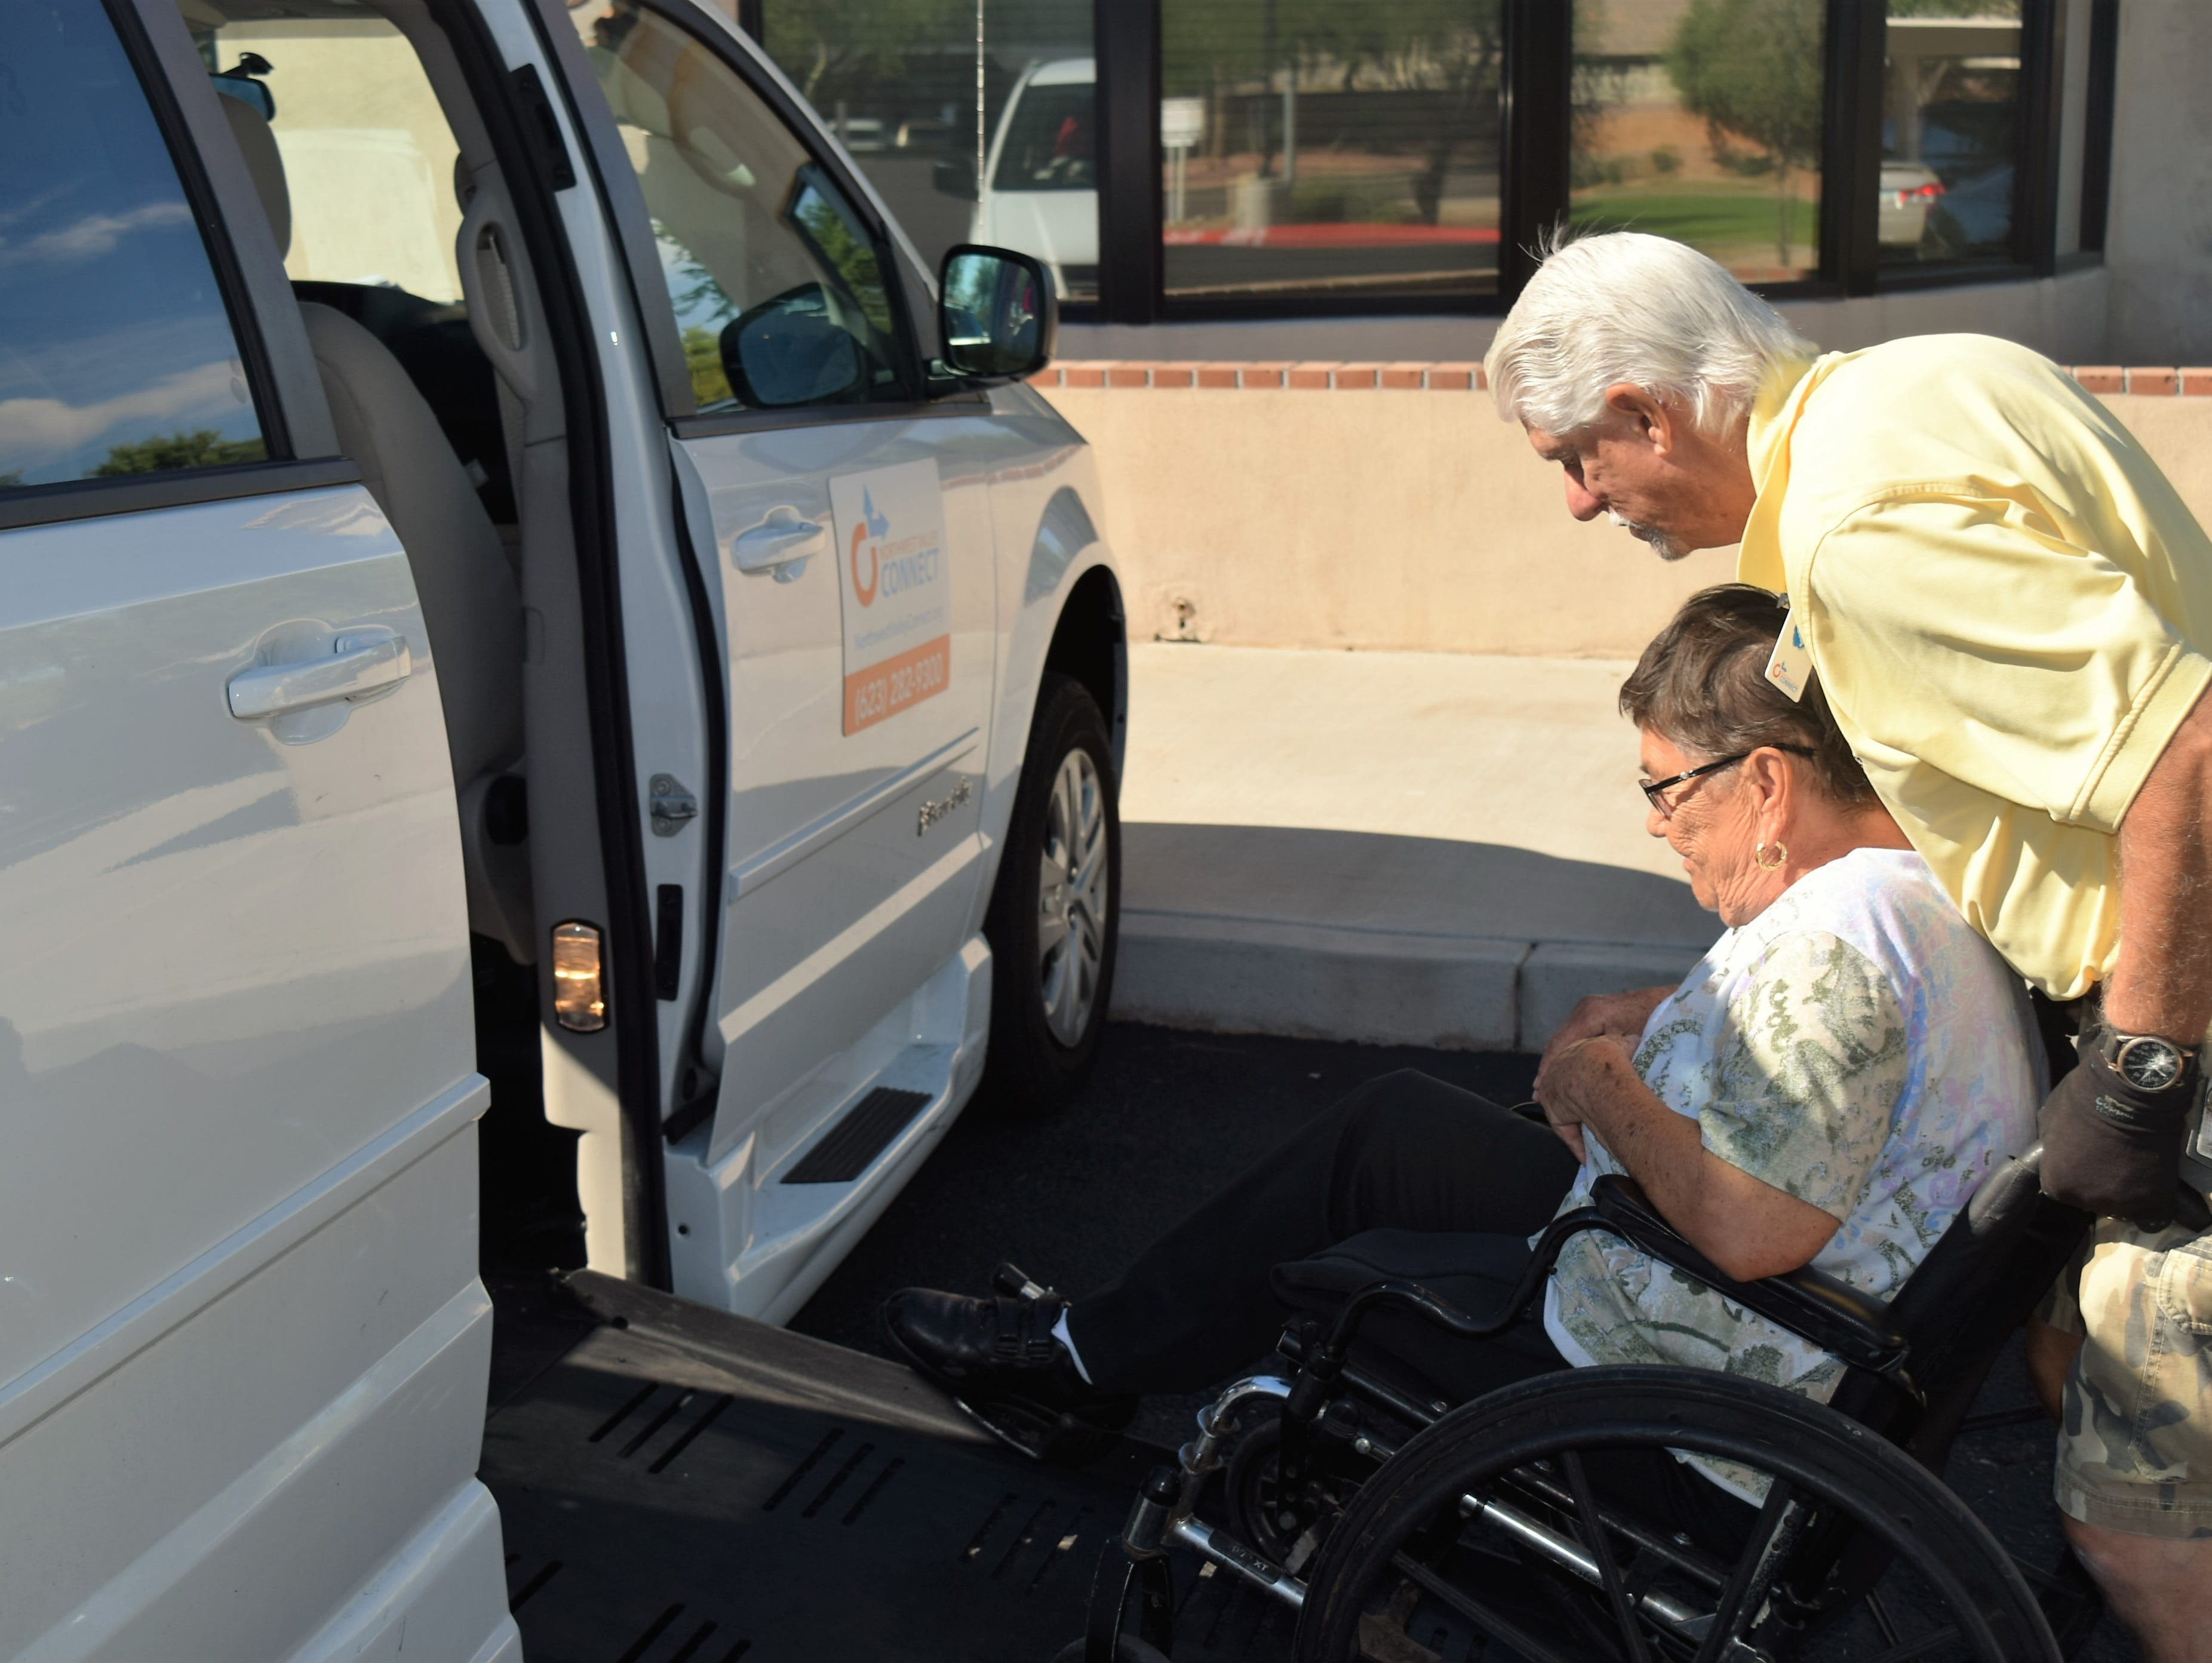 As Uber and Lyft take a bite out of the taxi industry, seniors without smartphones are having a hard time getting around. But there are solutions.